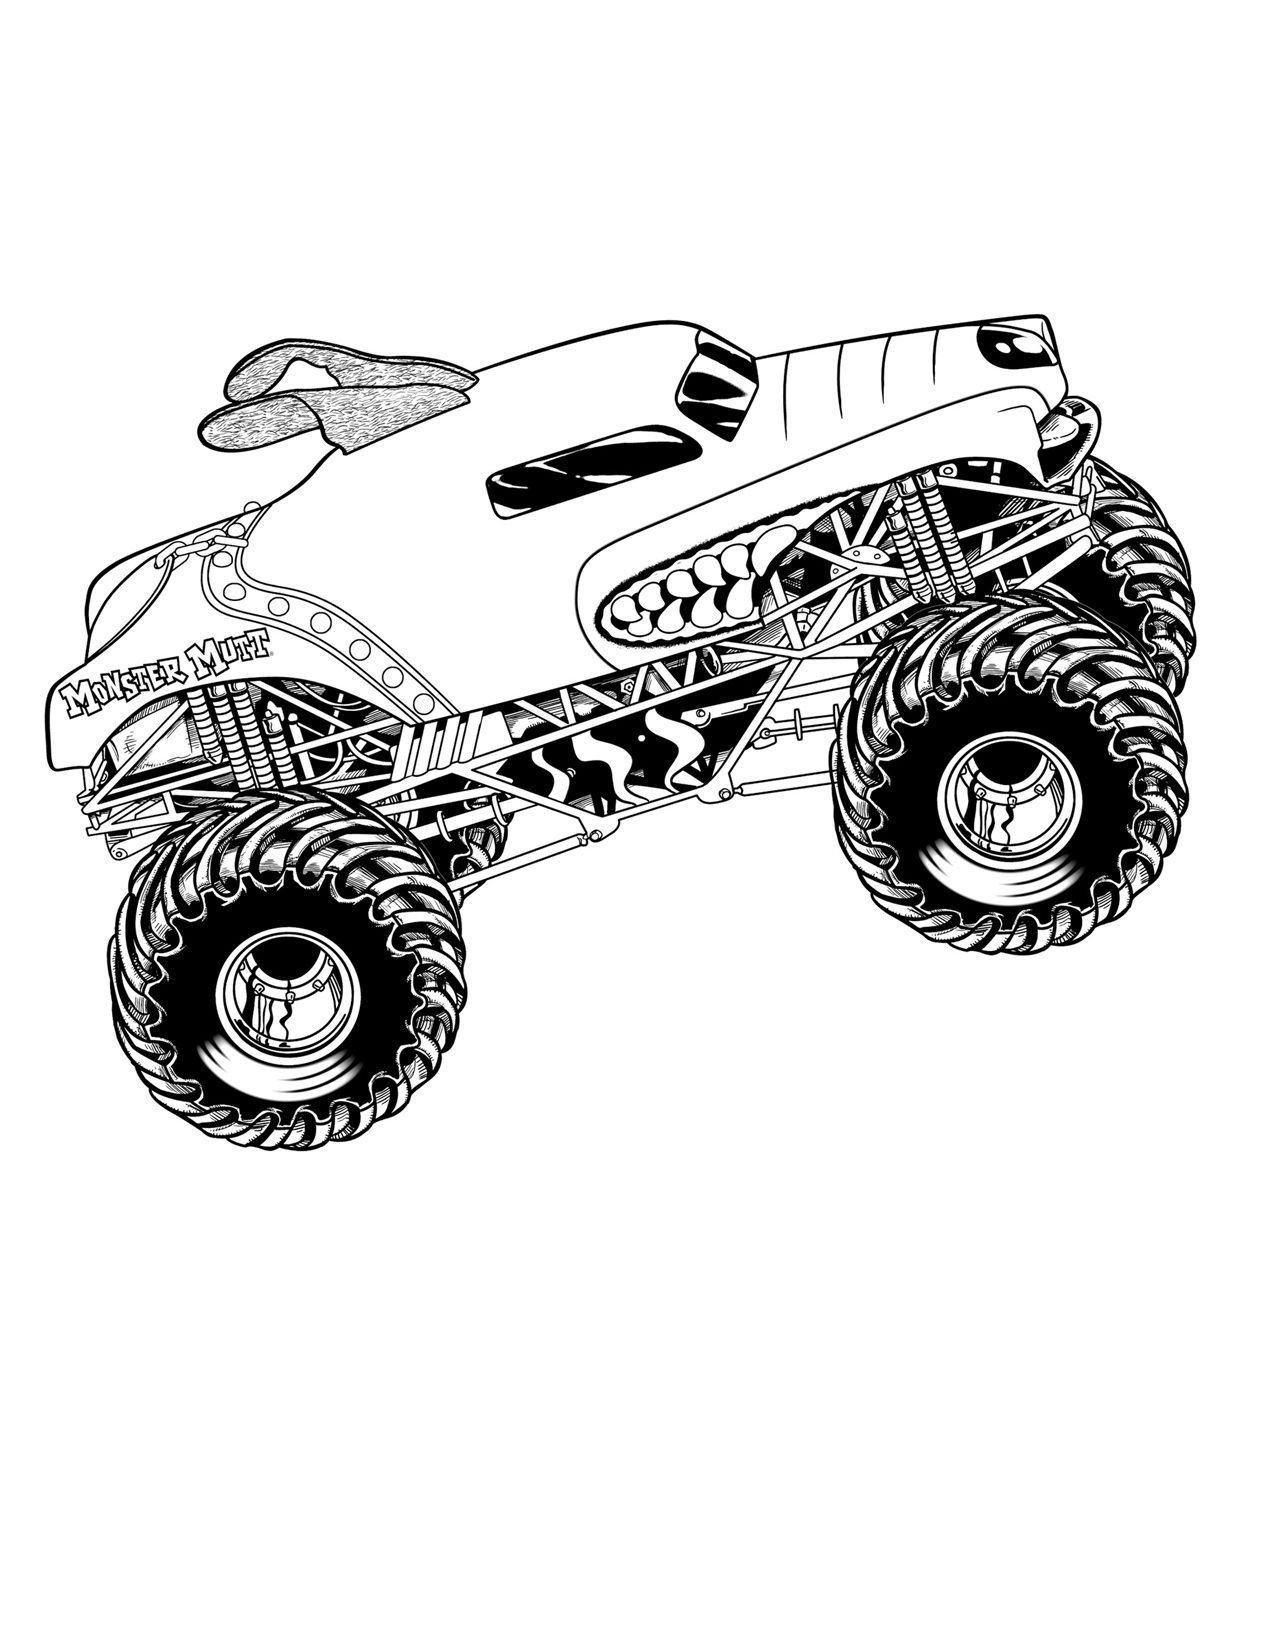 Dragon Monster Truck Coloring Page Youngandtae Com Monster Truck Coloring Pages Truck Coloring Pages Monster Trucks